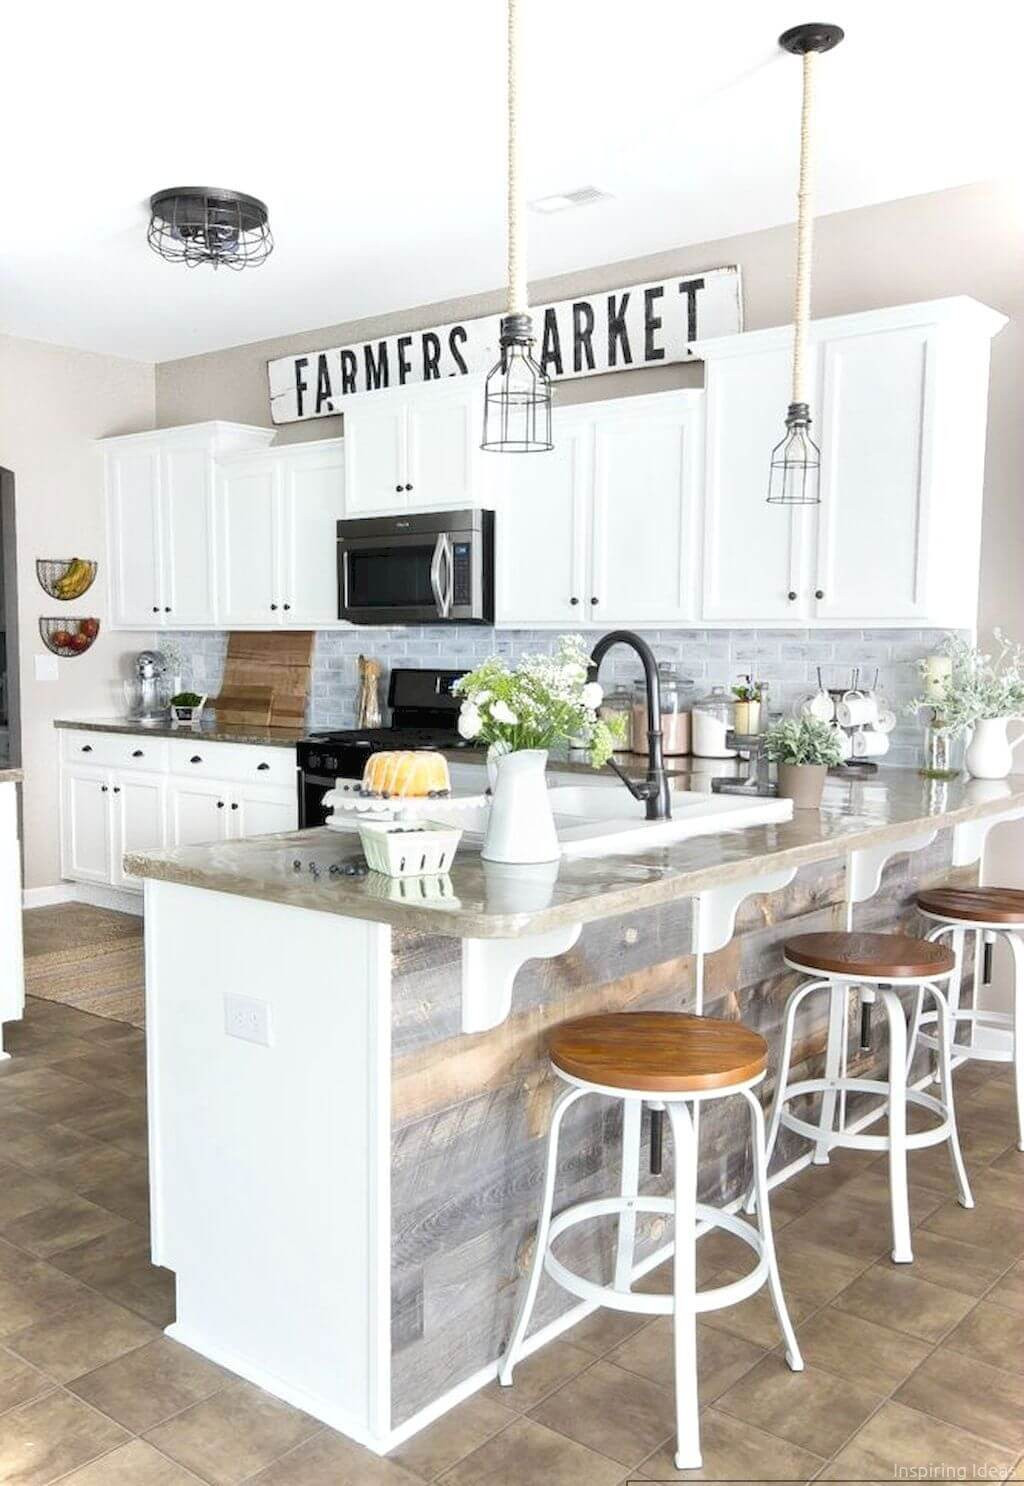 Best ideas about Small Farmhouse Kitchen Ideas . Save or Pin 35 Best Farmhouse Kitchen Cabinet Ideas and Designs for 2019 Now.